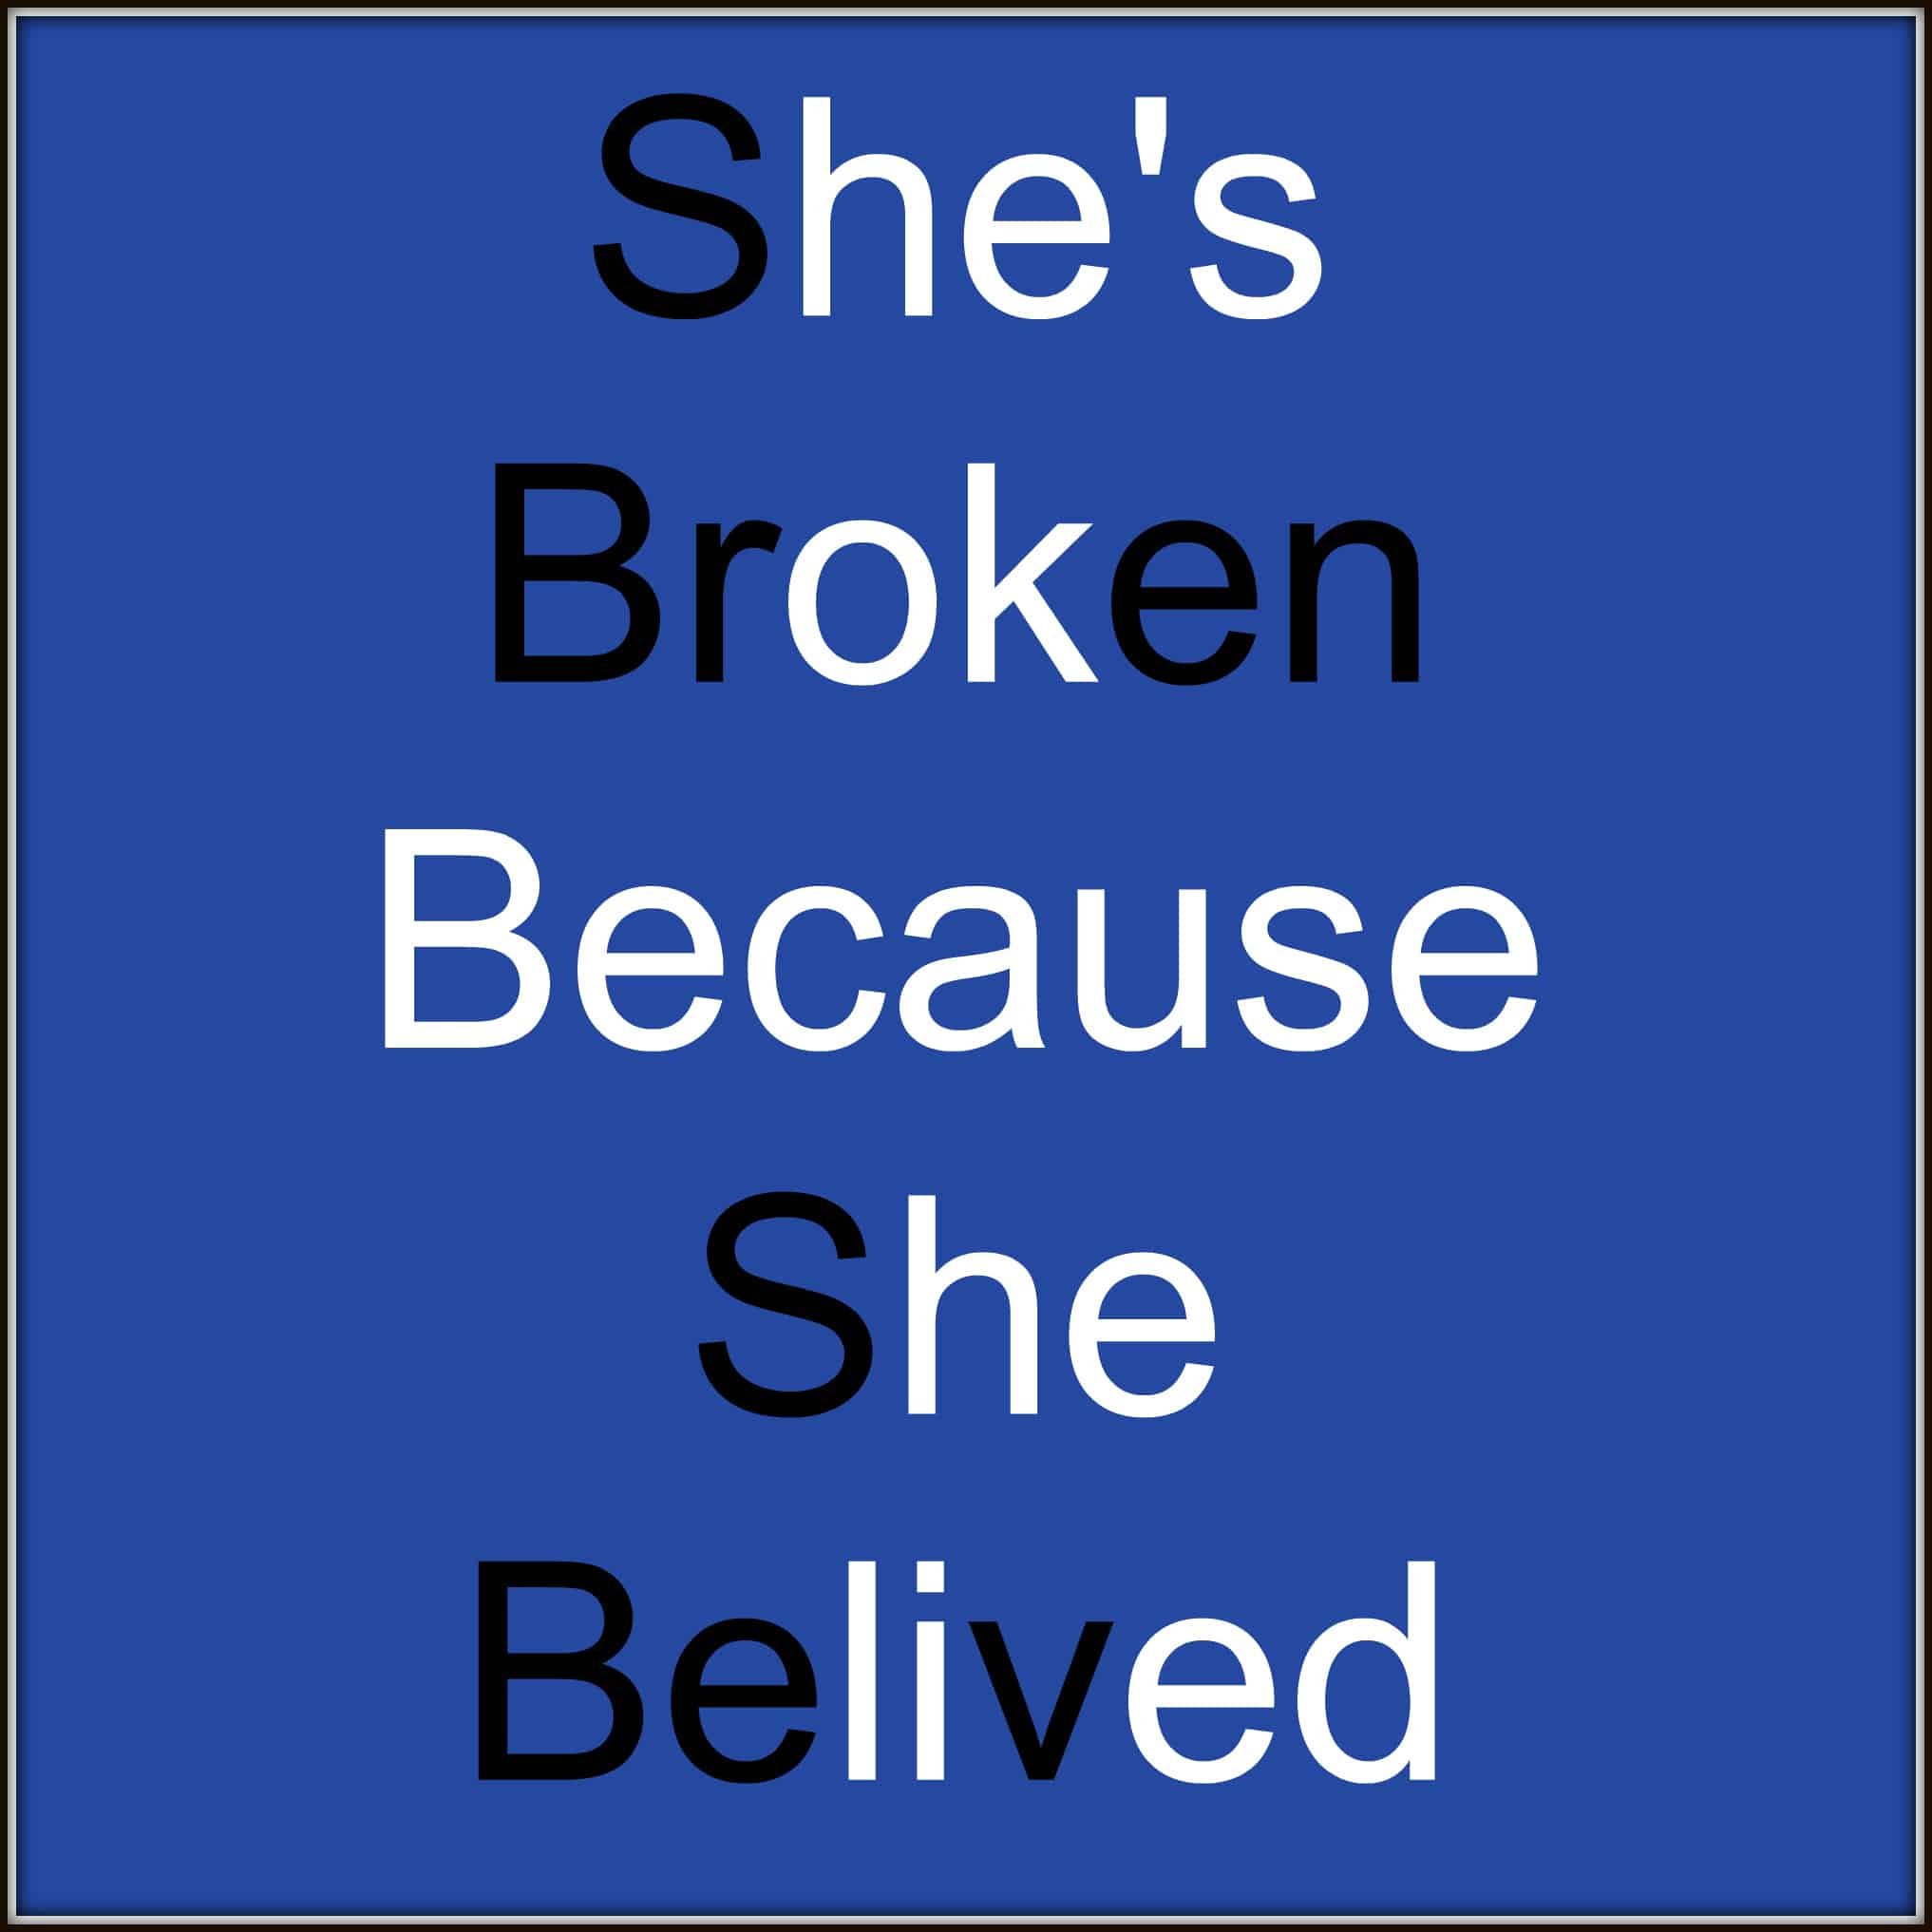 shes broken because she believed he's ok because he lied